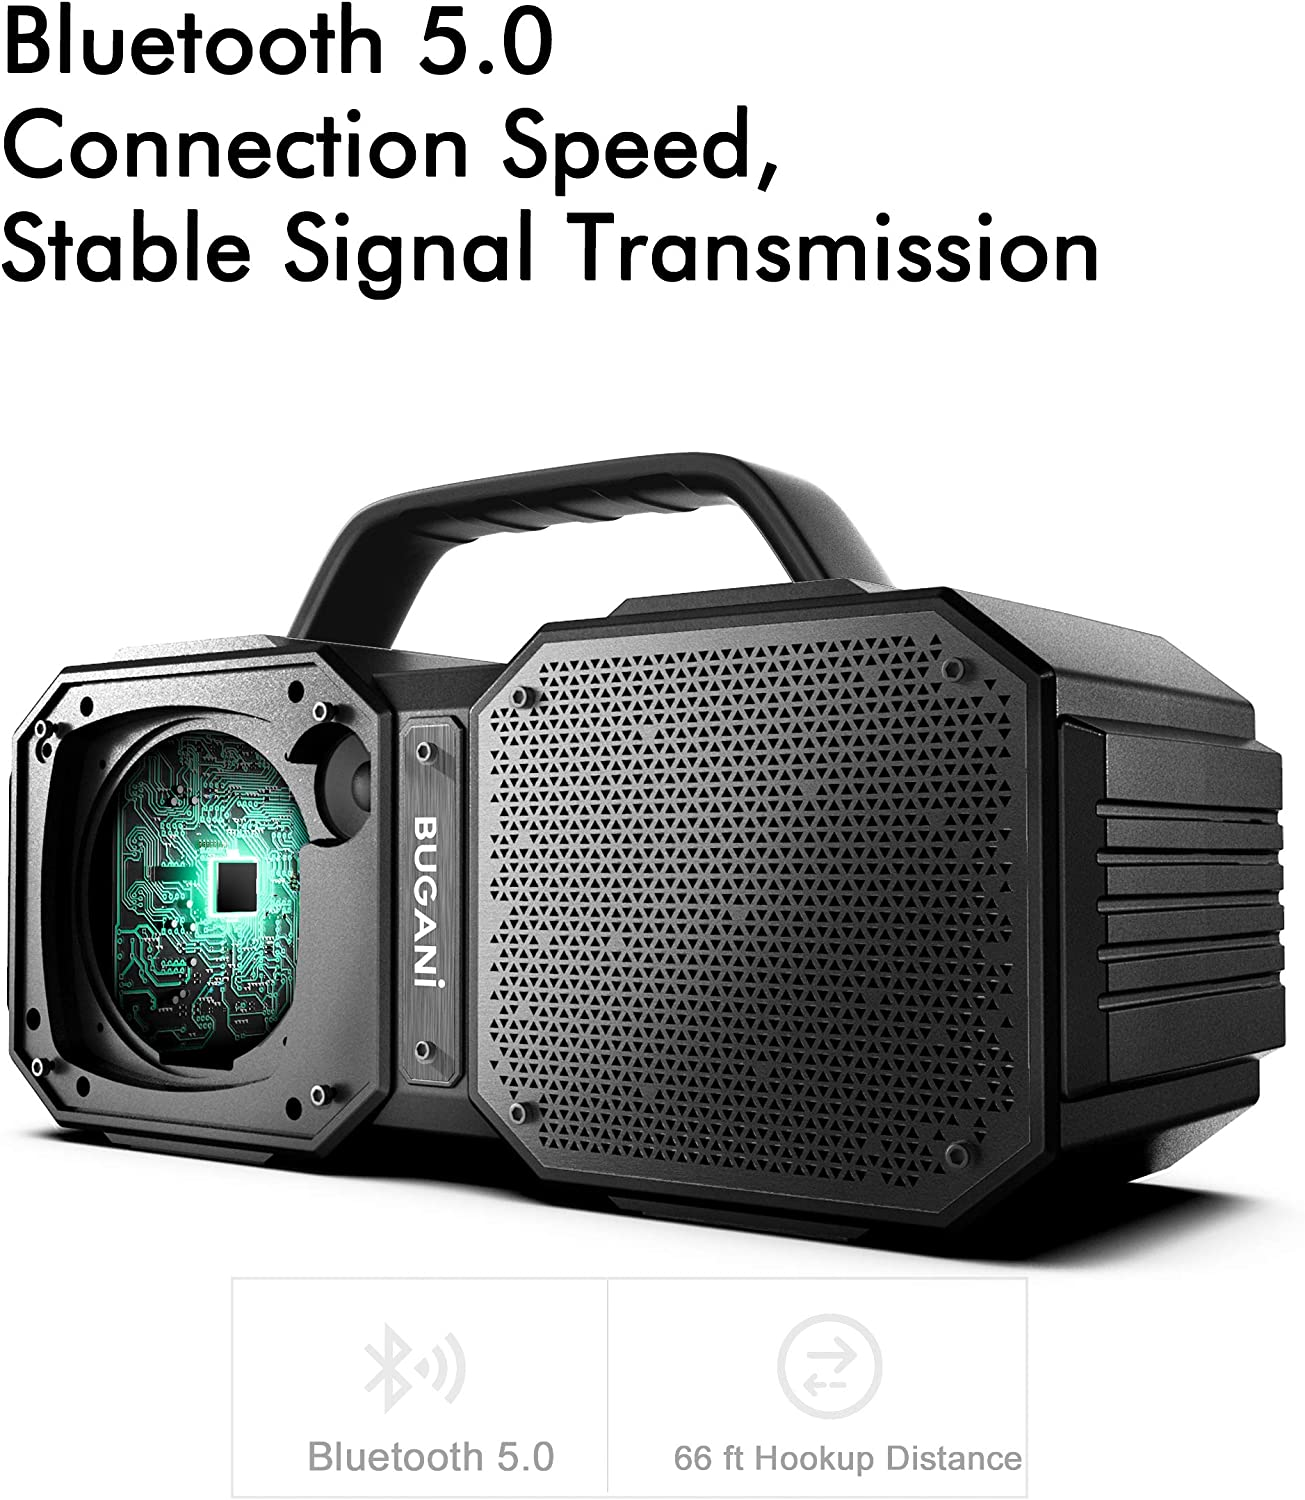 40W Super Power Bluetooth Speakers Rich Woofer Suitable for Family Gatherings and Outdoor Travel. Black Stereo Loud Portable Bluetooth Speakers 5.0